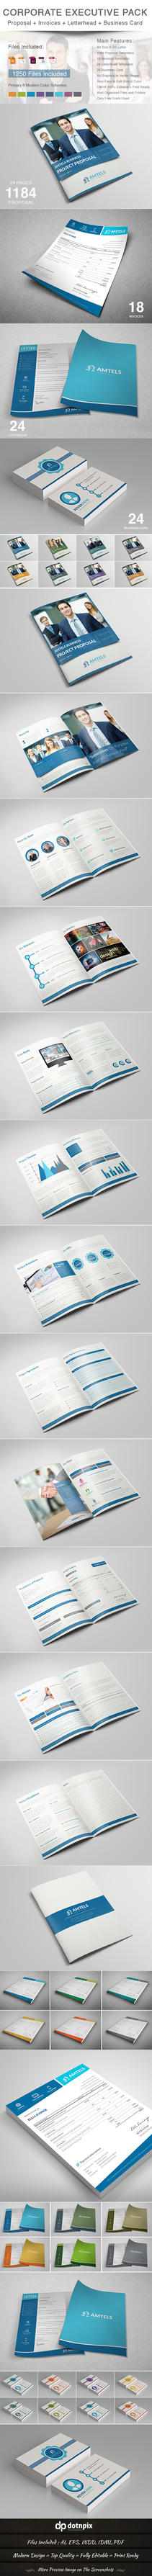 Corporate Executive Pack by dotnpix